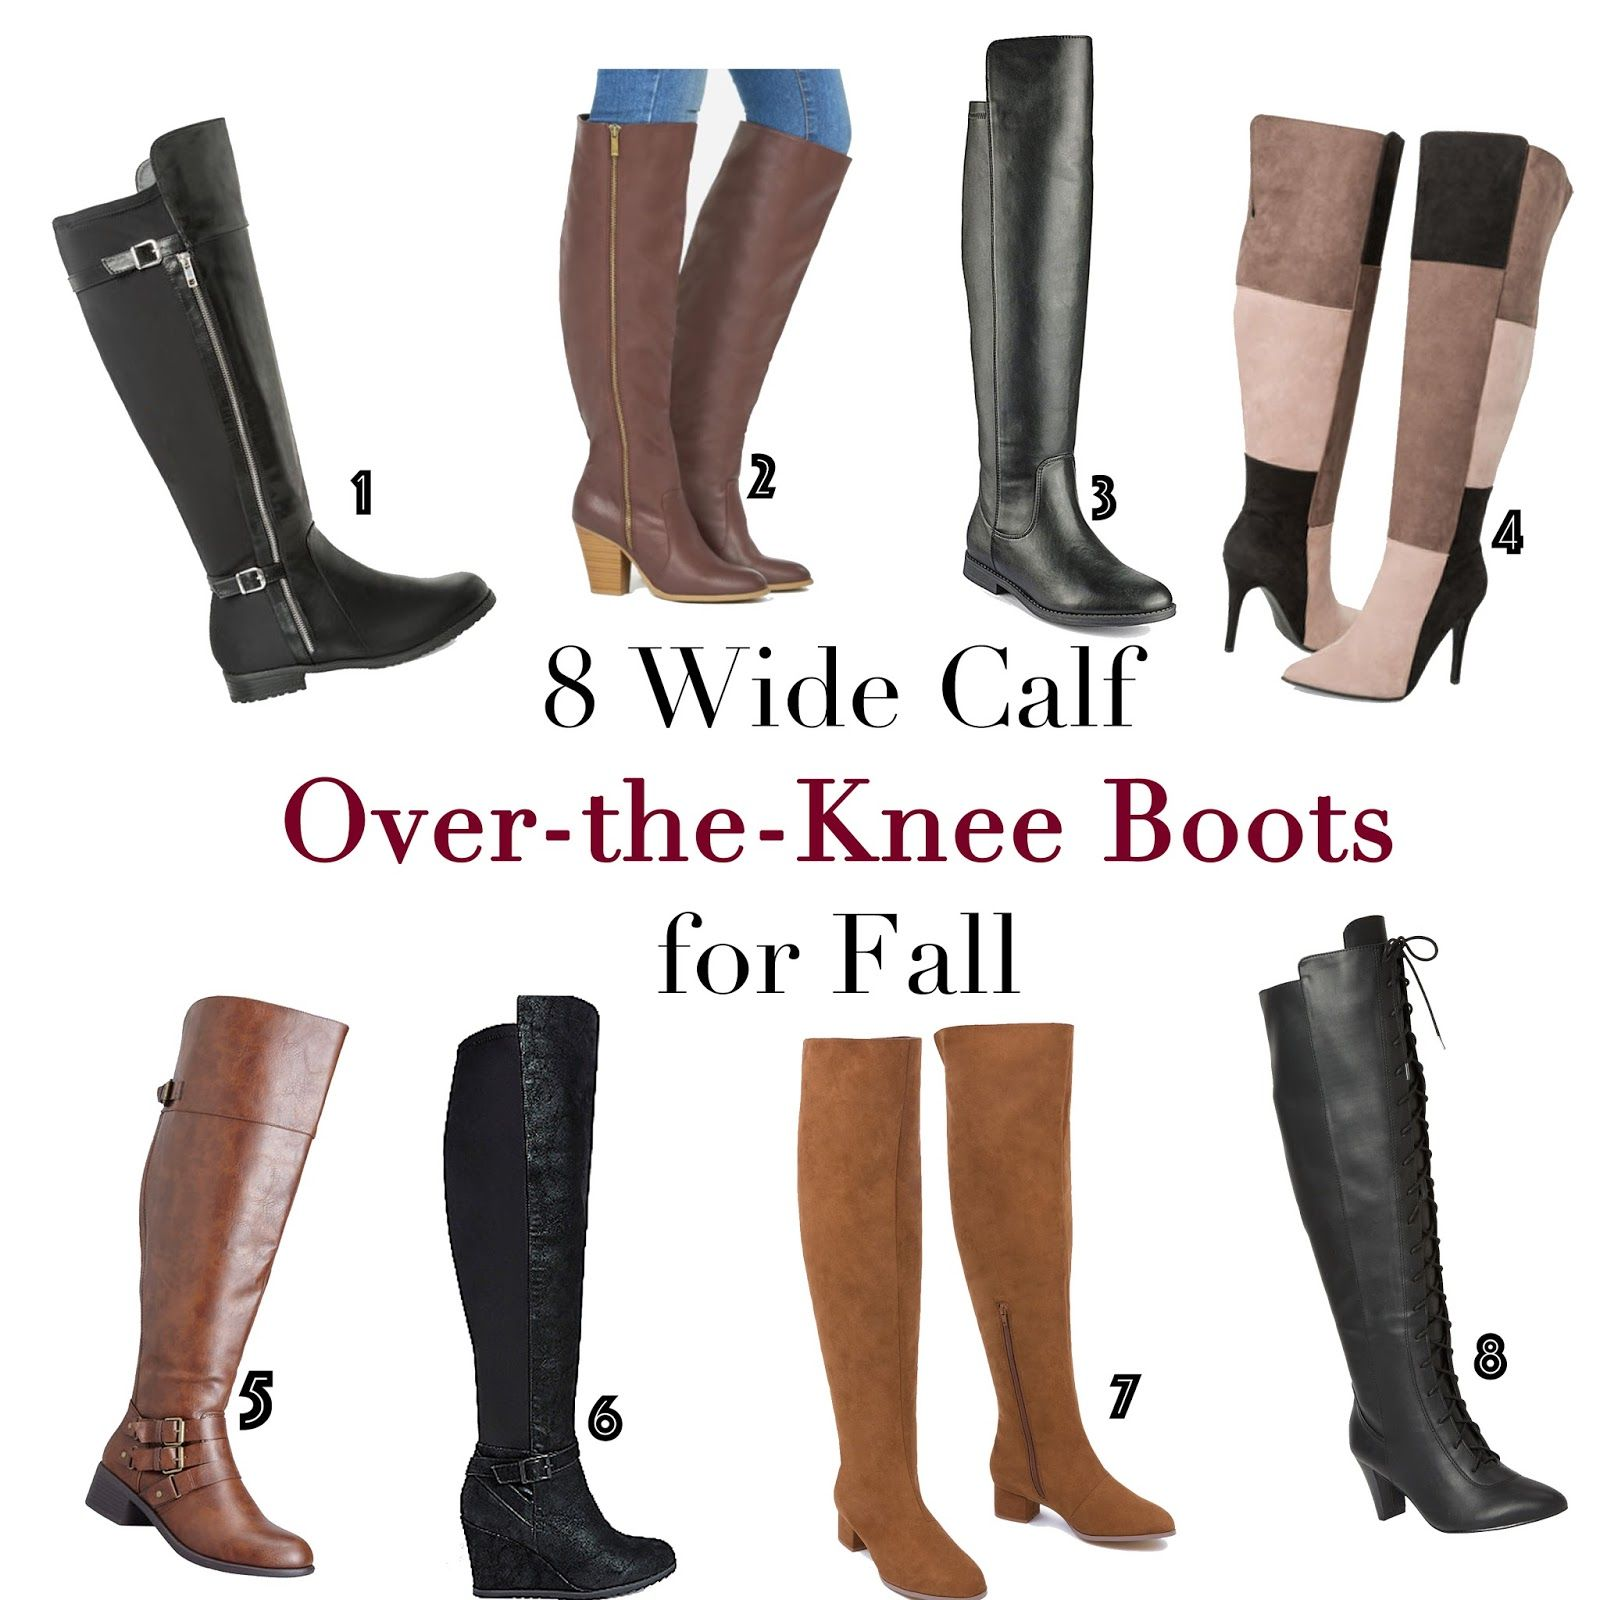 a3d1e53c307 Boot time is here and I think it s fair to say it is one of our favorite  times of year. I get a lot of request for over-the-knee boots.